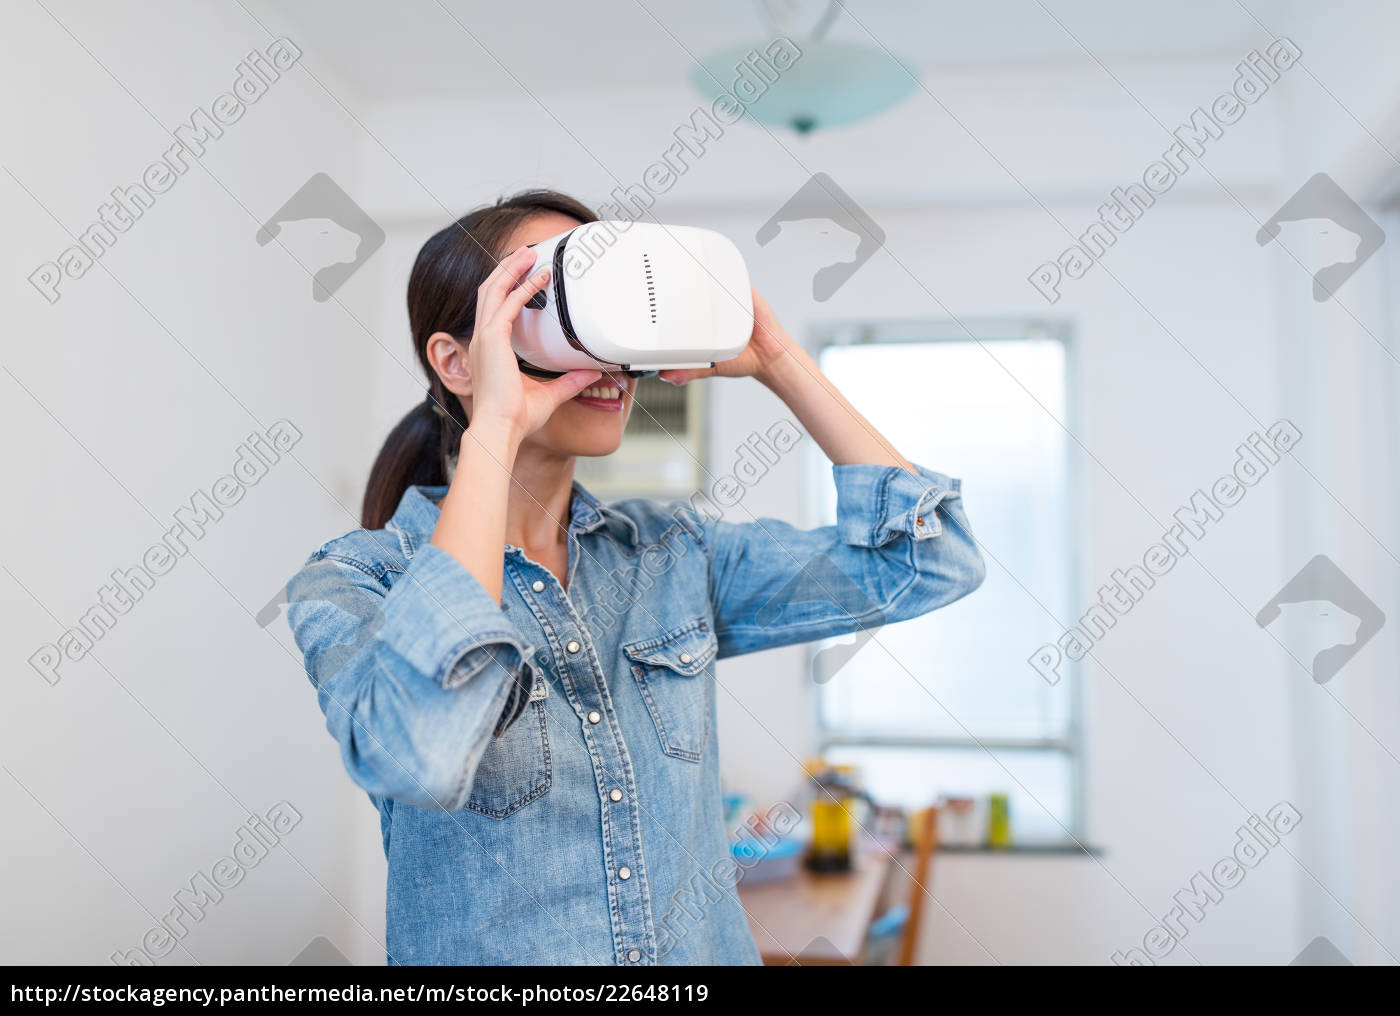 woman, looking, with, vr, device - 22648119